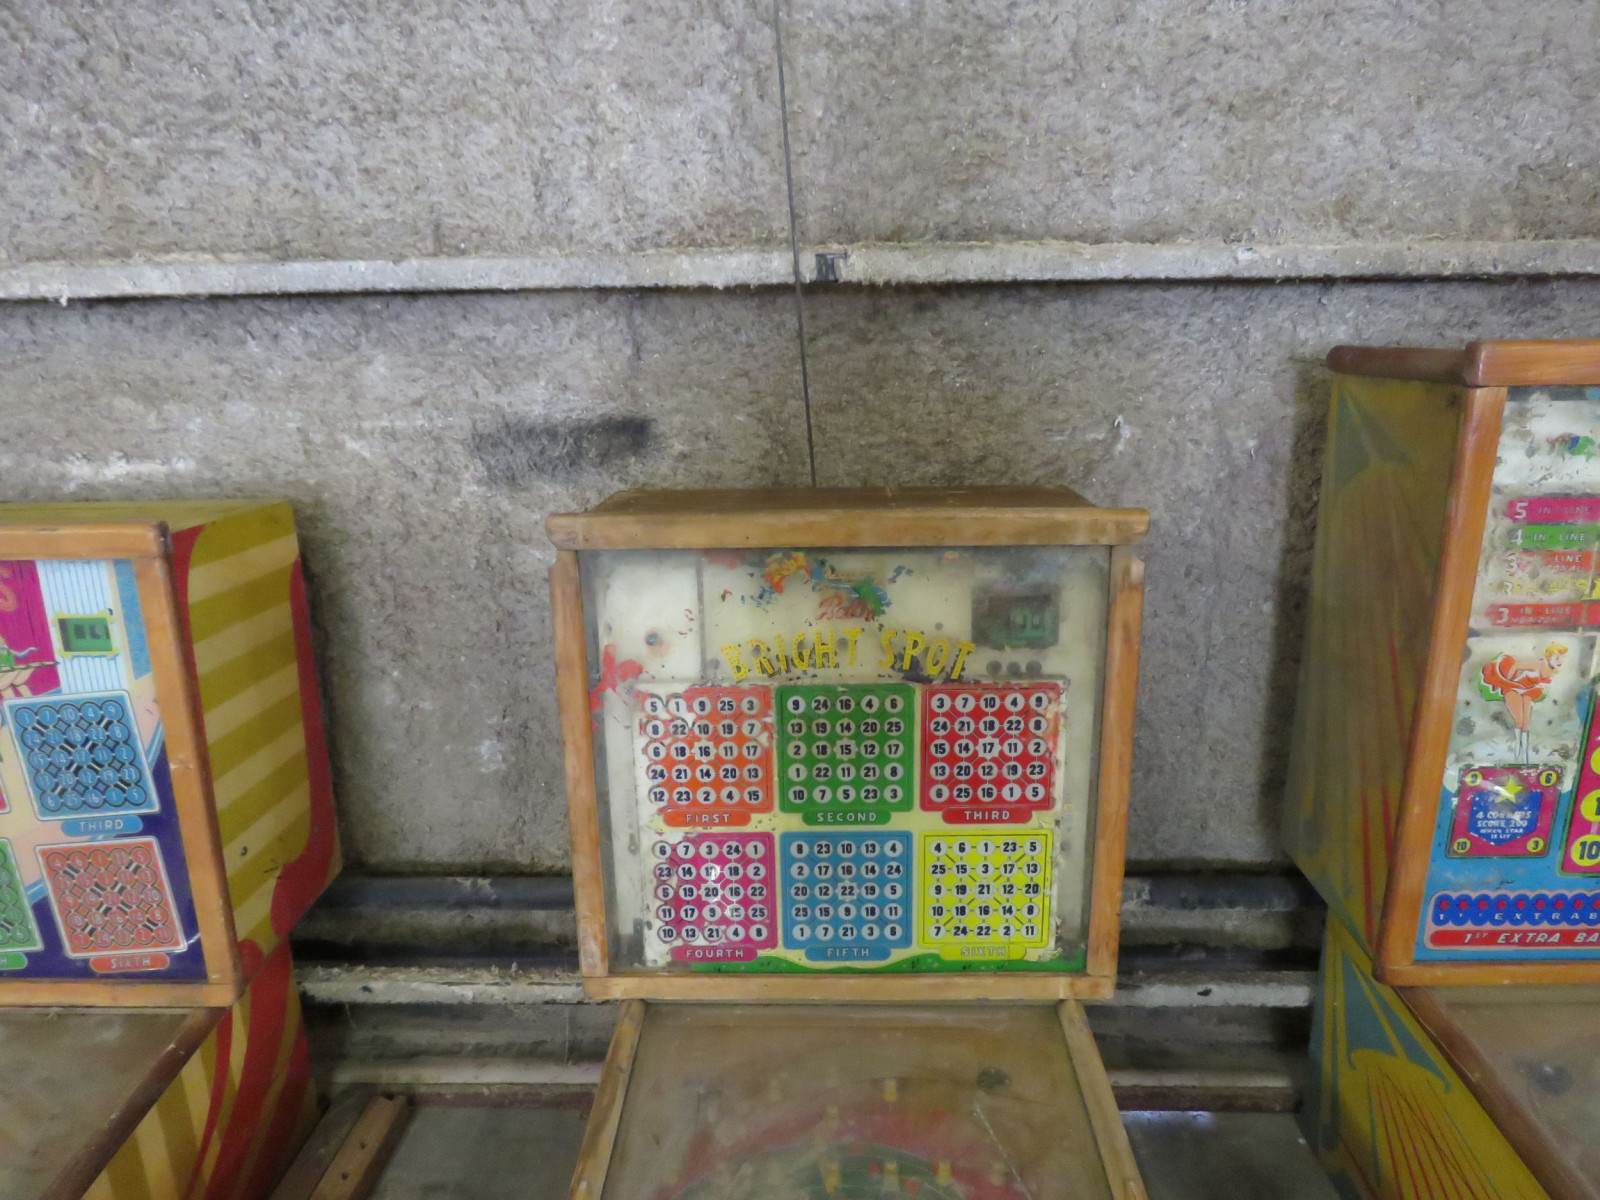 Vintage Bally Bright Spots Pinball Machine - Image 3